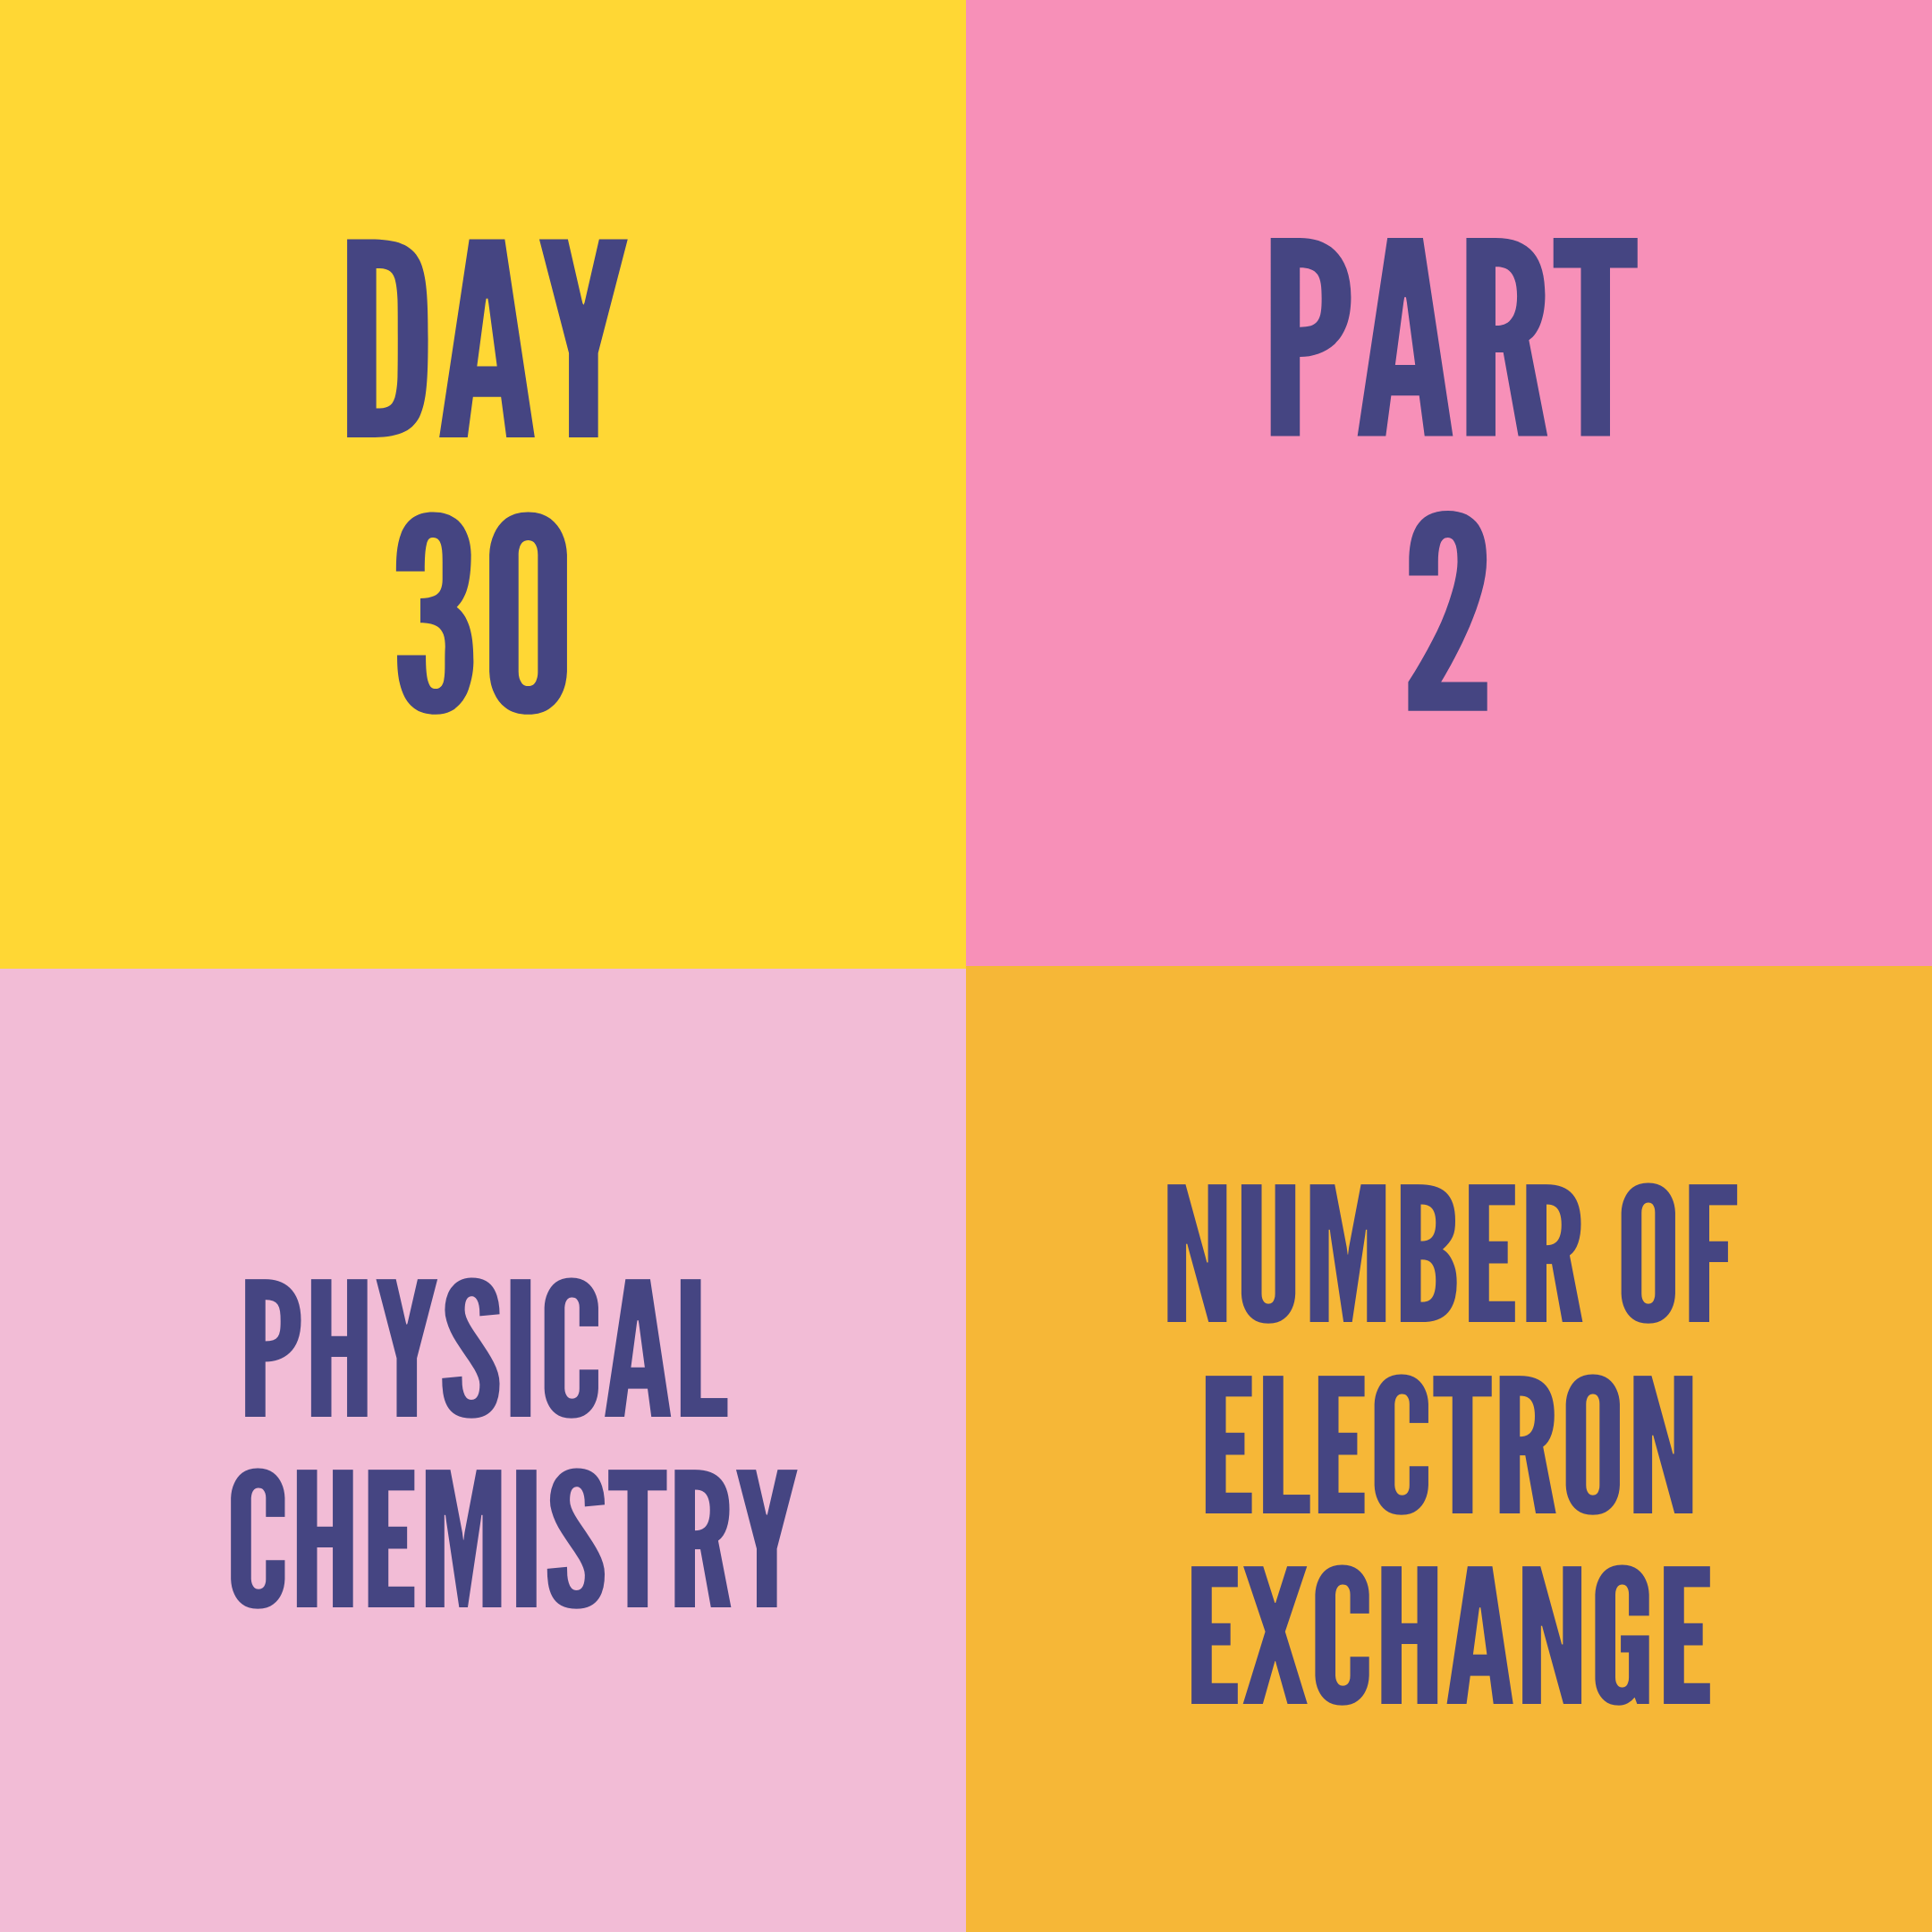 DAY-30 PART-2 NUMBER OF ELECTRON EXCHANGE